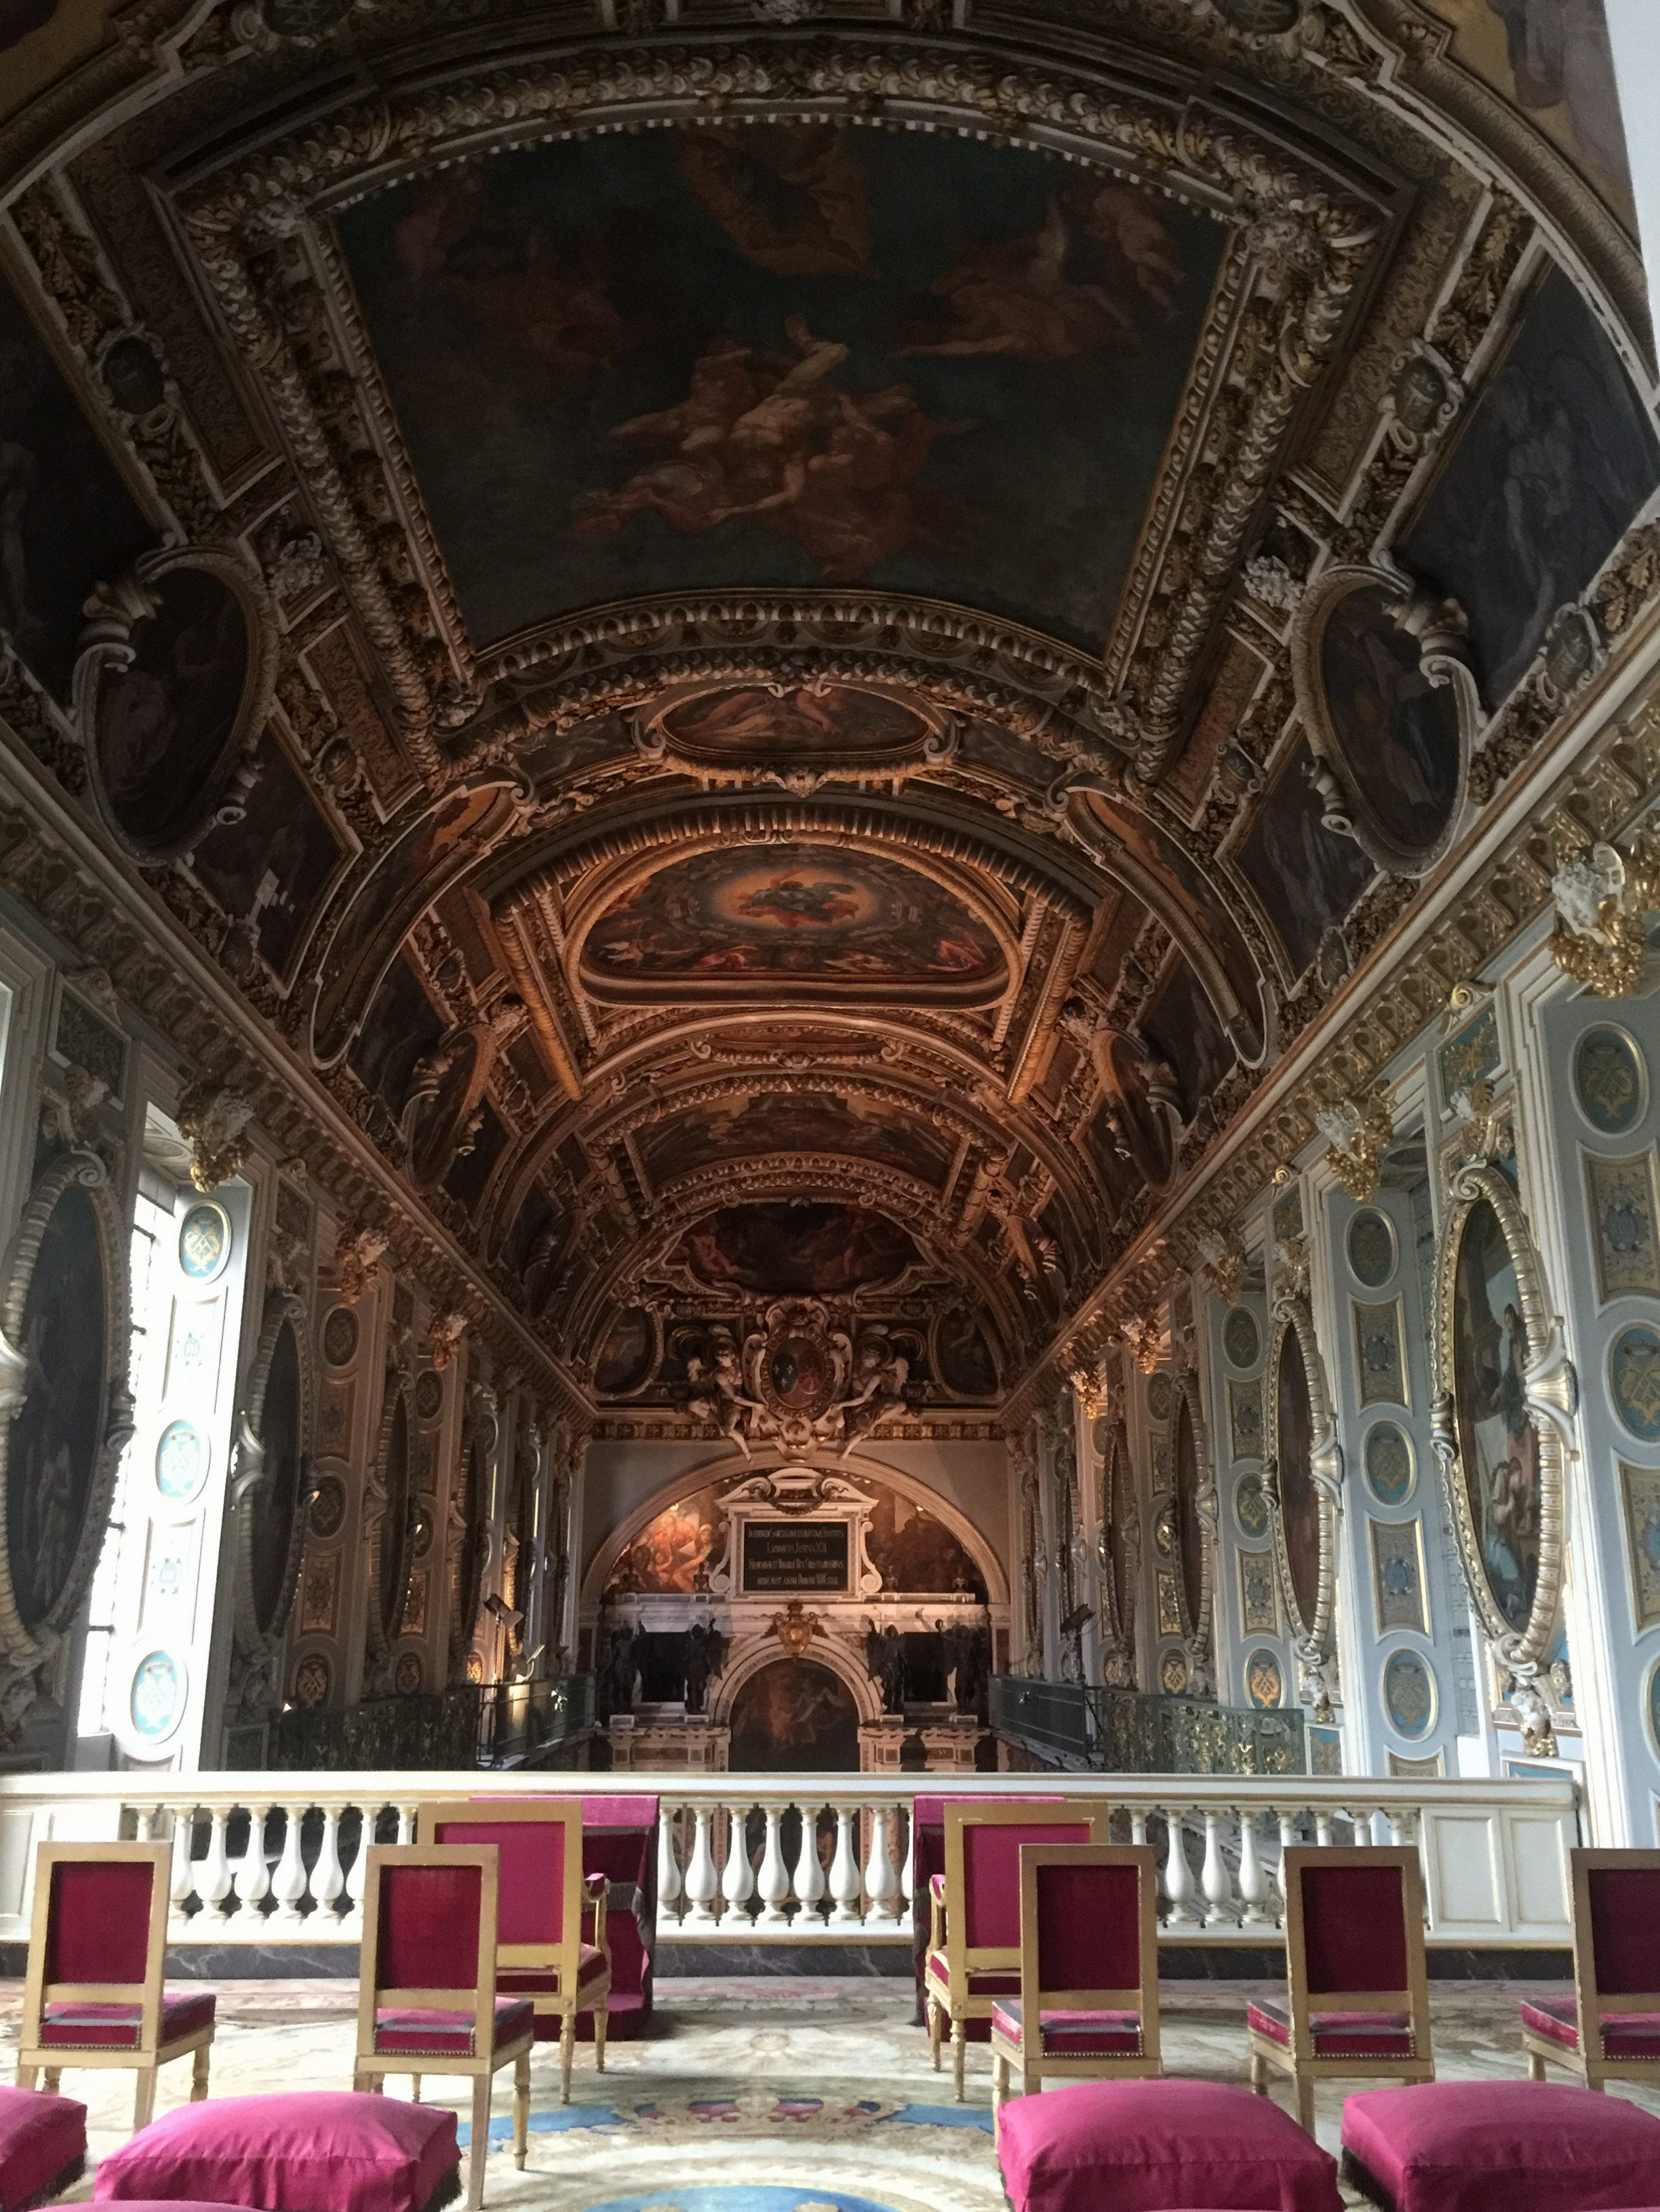 The ceiling murals are seen at the upper level of the chapel of the Palace of Fontainebleau.